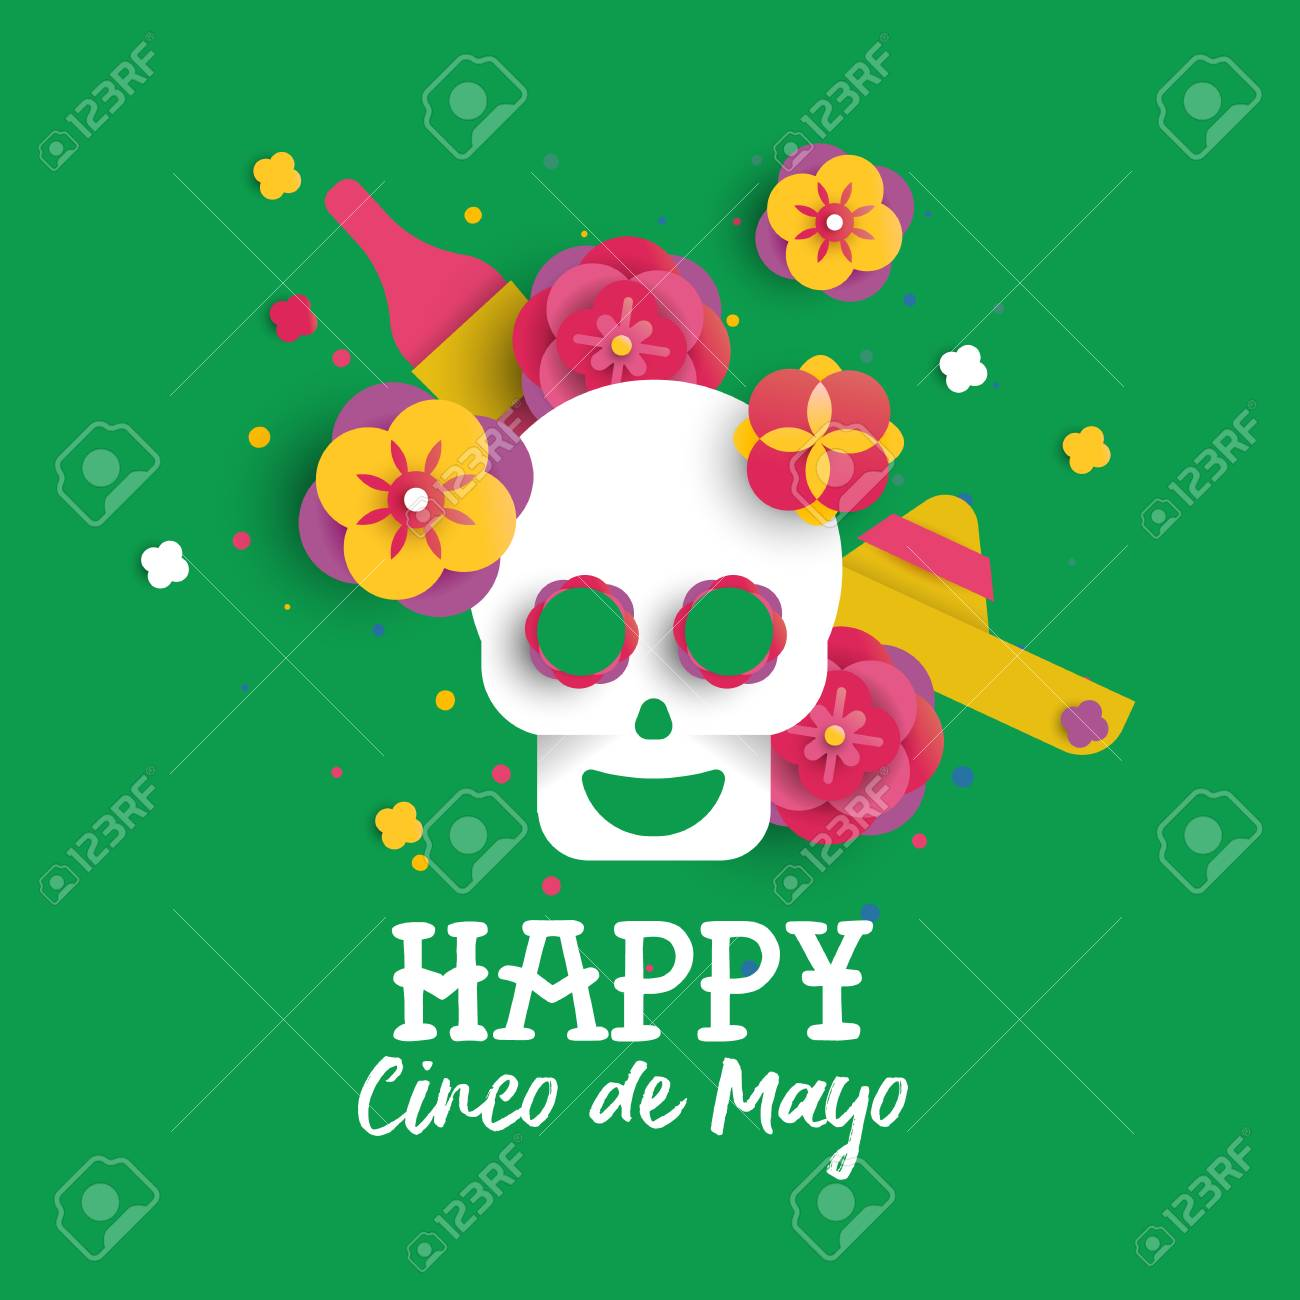 Happy cinco de mayo greeting card illustration in 3d paper cut happy cinco de mayo greeting card illustration in 3d paper cut style traditional mexican sugar m4hsunfo